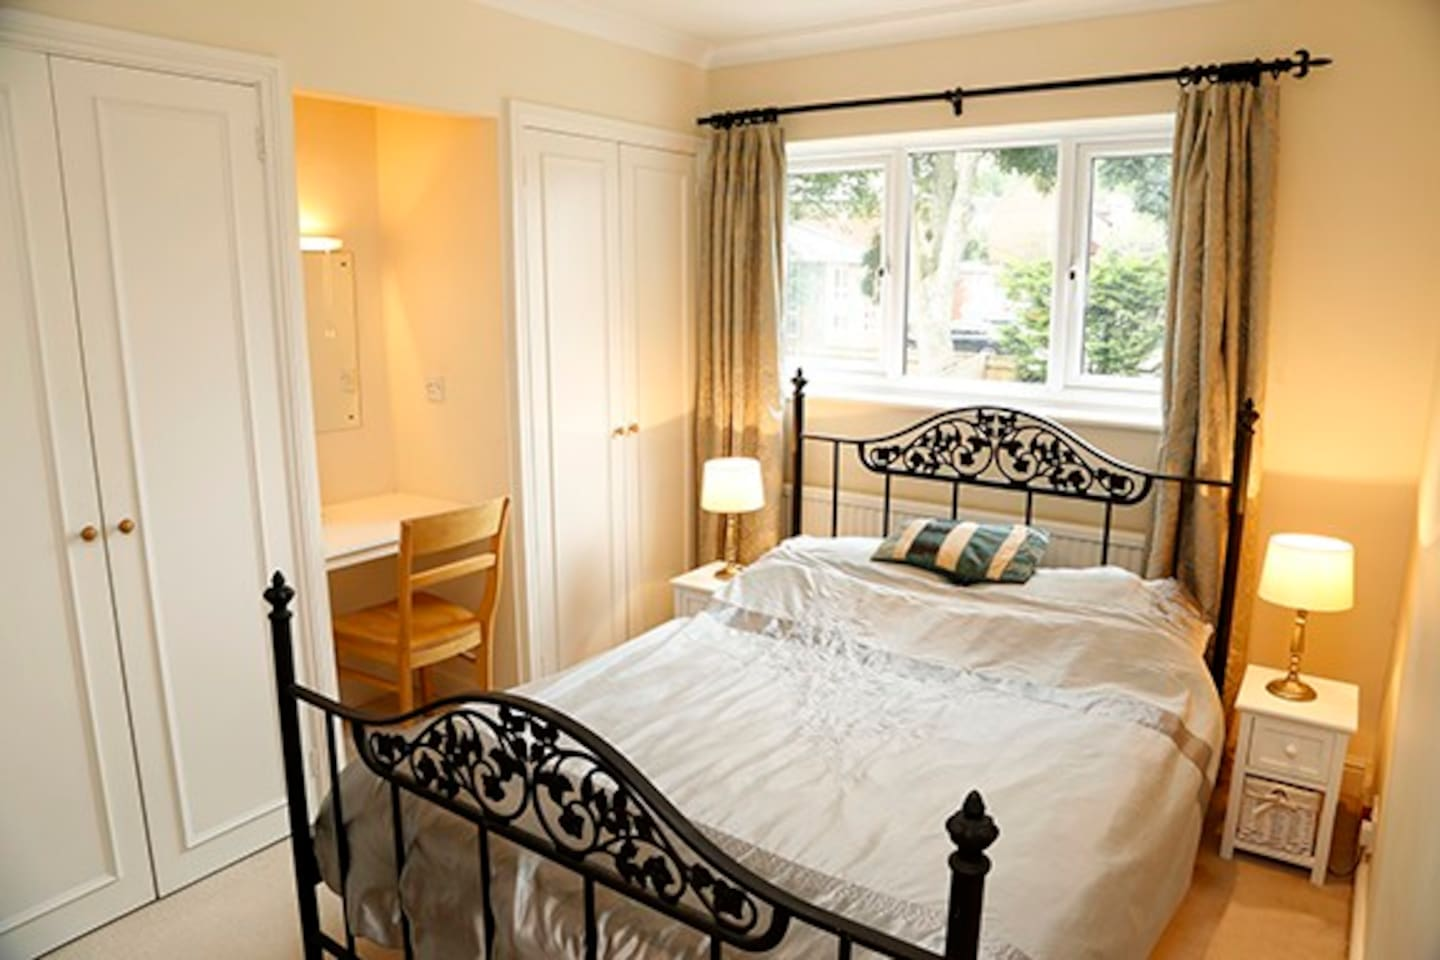 Bright, light, airy double room with large flat screen TV.  Small desk/vanity area with chair, wardrobe & drawers. Lovely and quiet. Tea & coffee making facilities in the room. The room is next to the 2nd double room - ideal for friends & families.